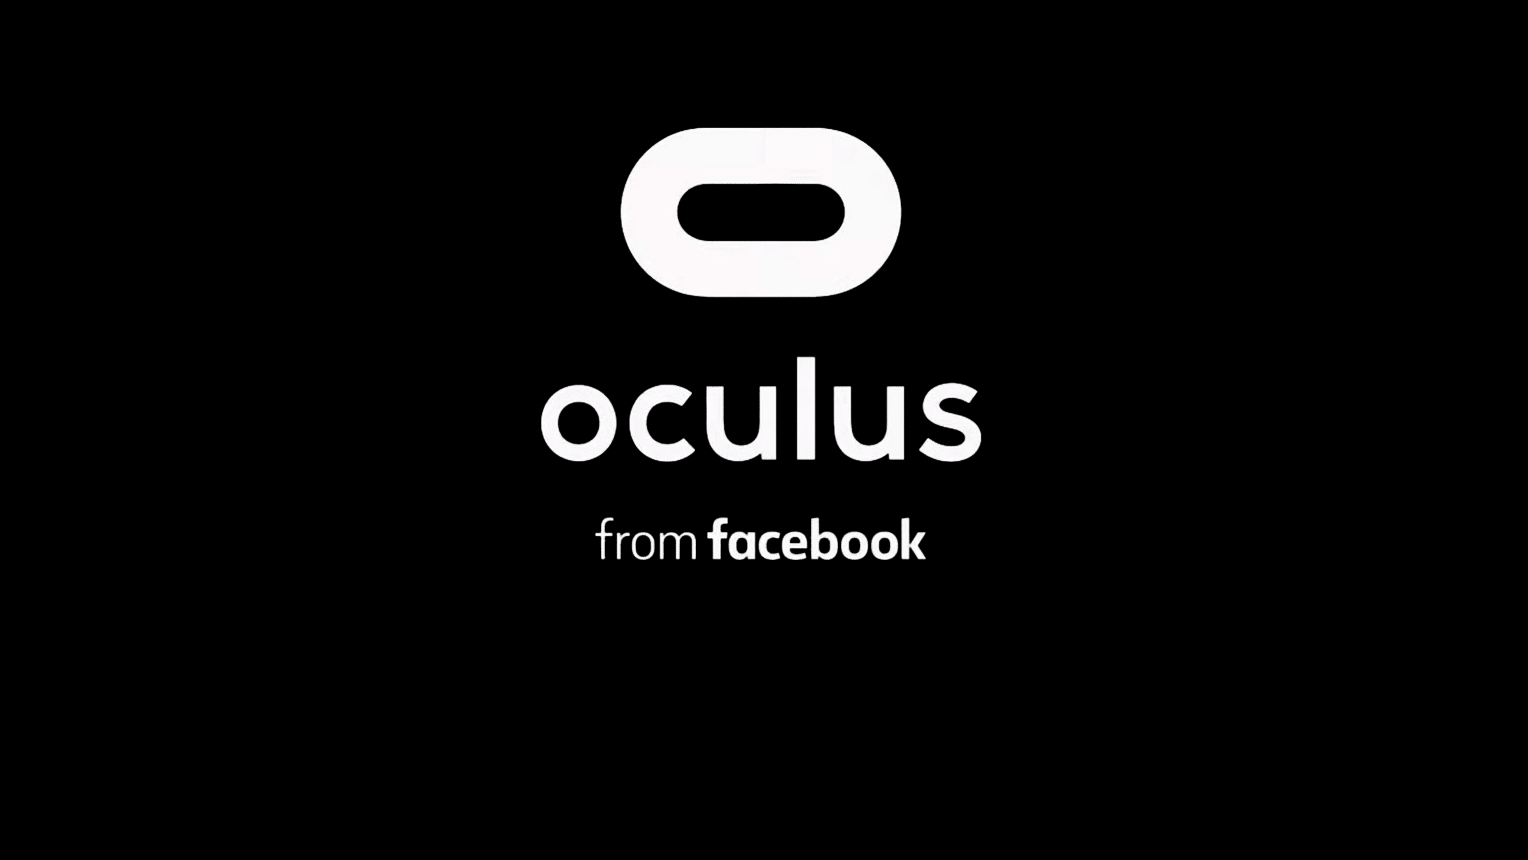 Germany Opens Legal Action Against Facebook Account Requirement for Oculus Headsets